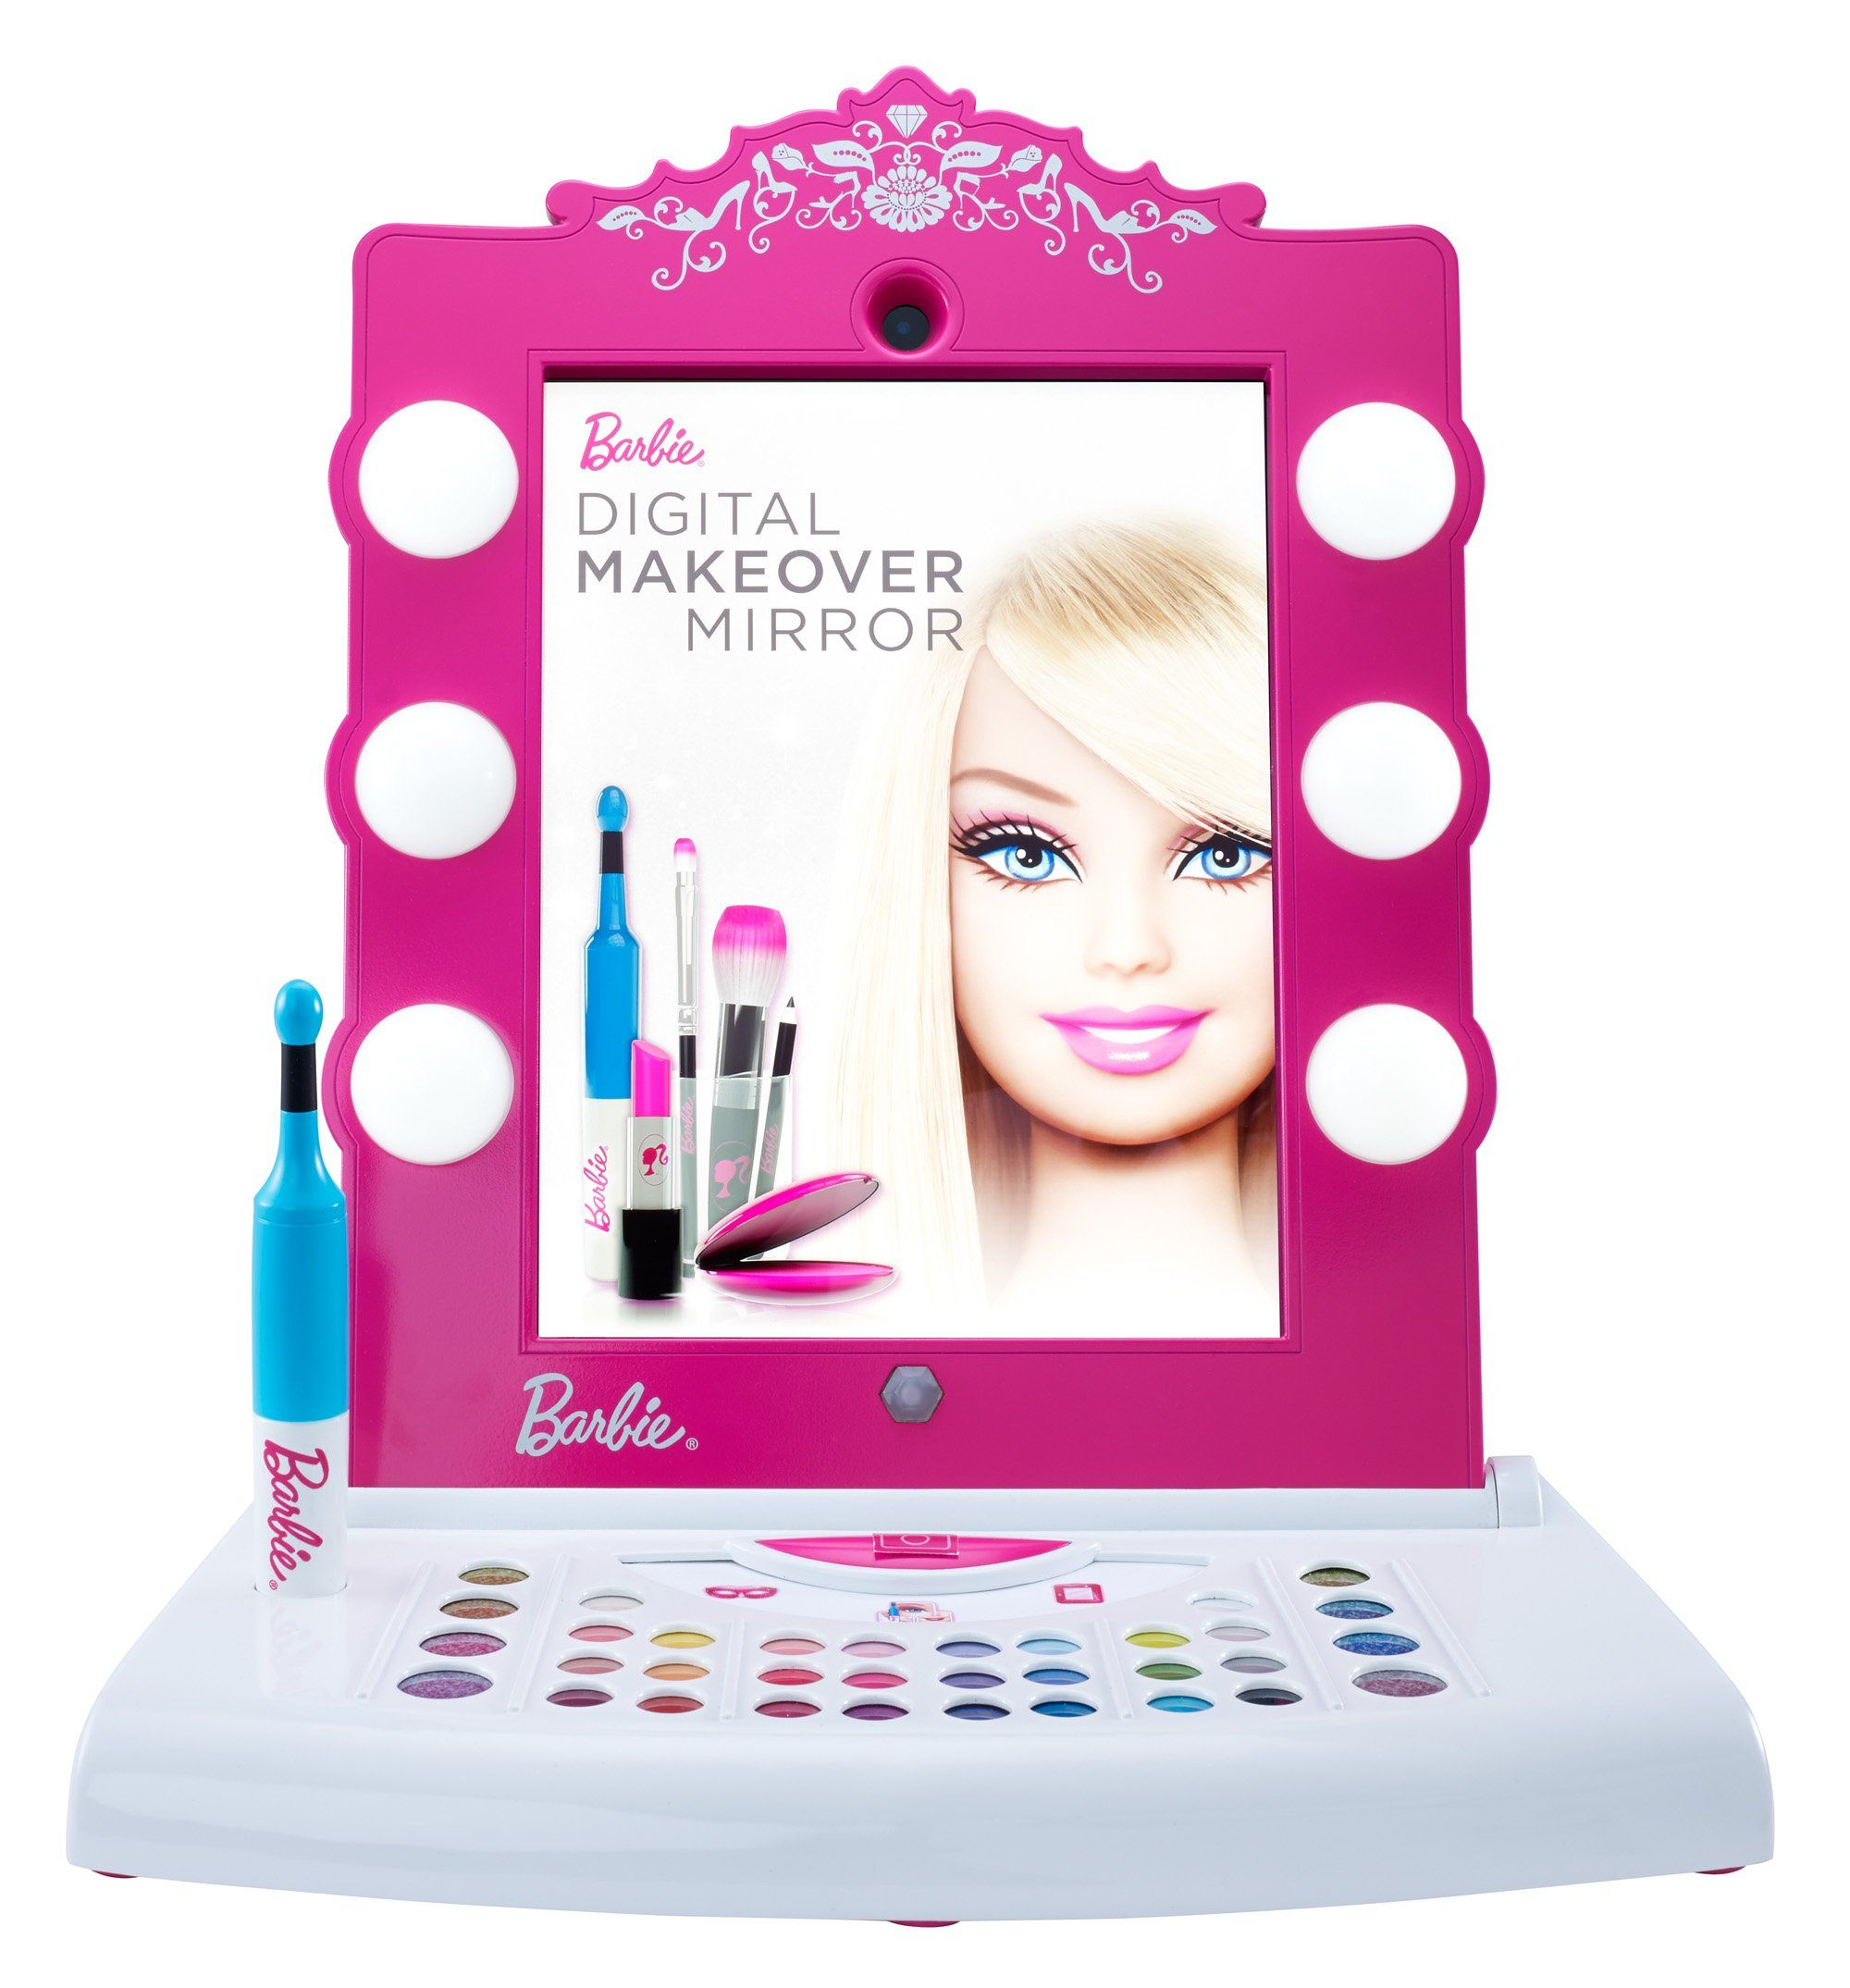 Barbie Digital Makeover Mirror for iPad